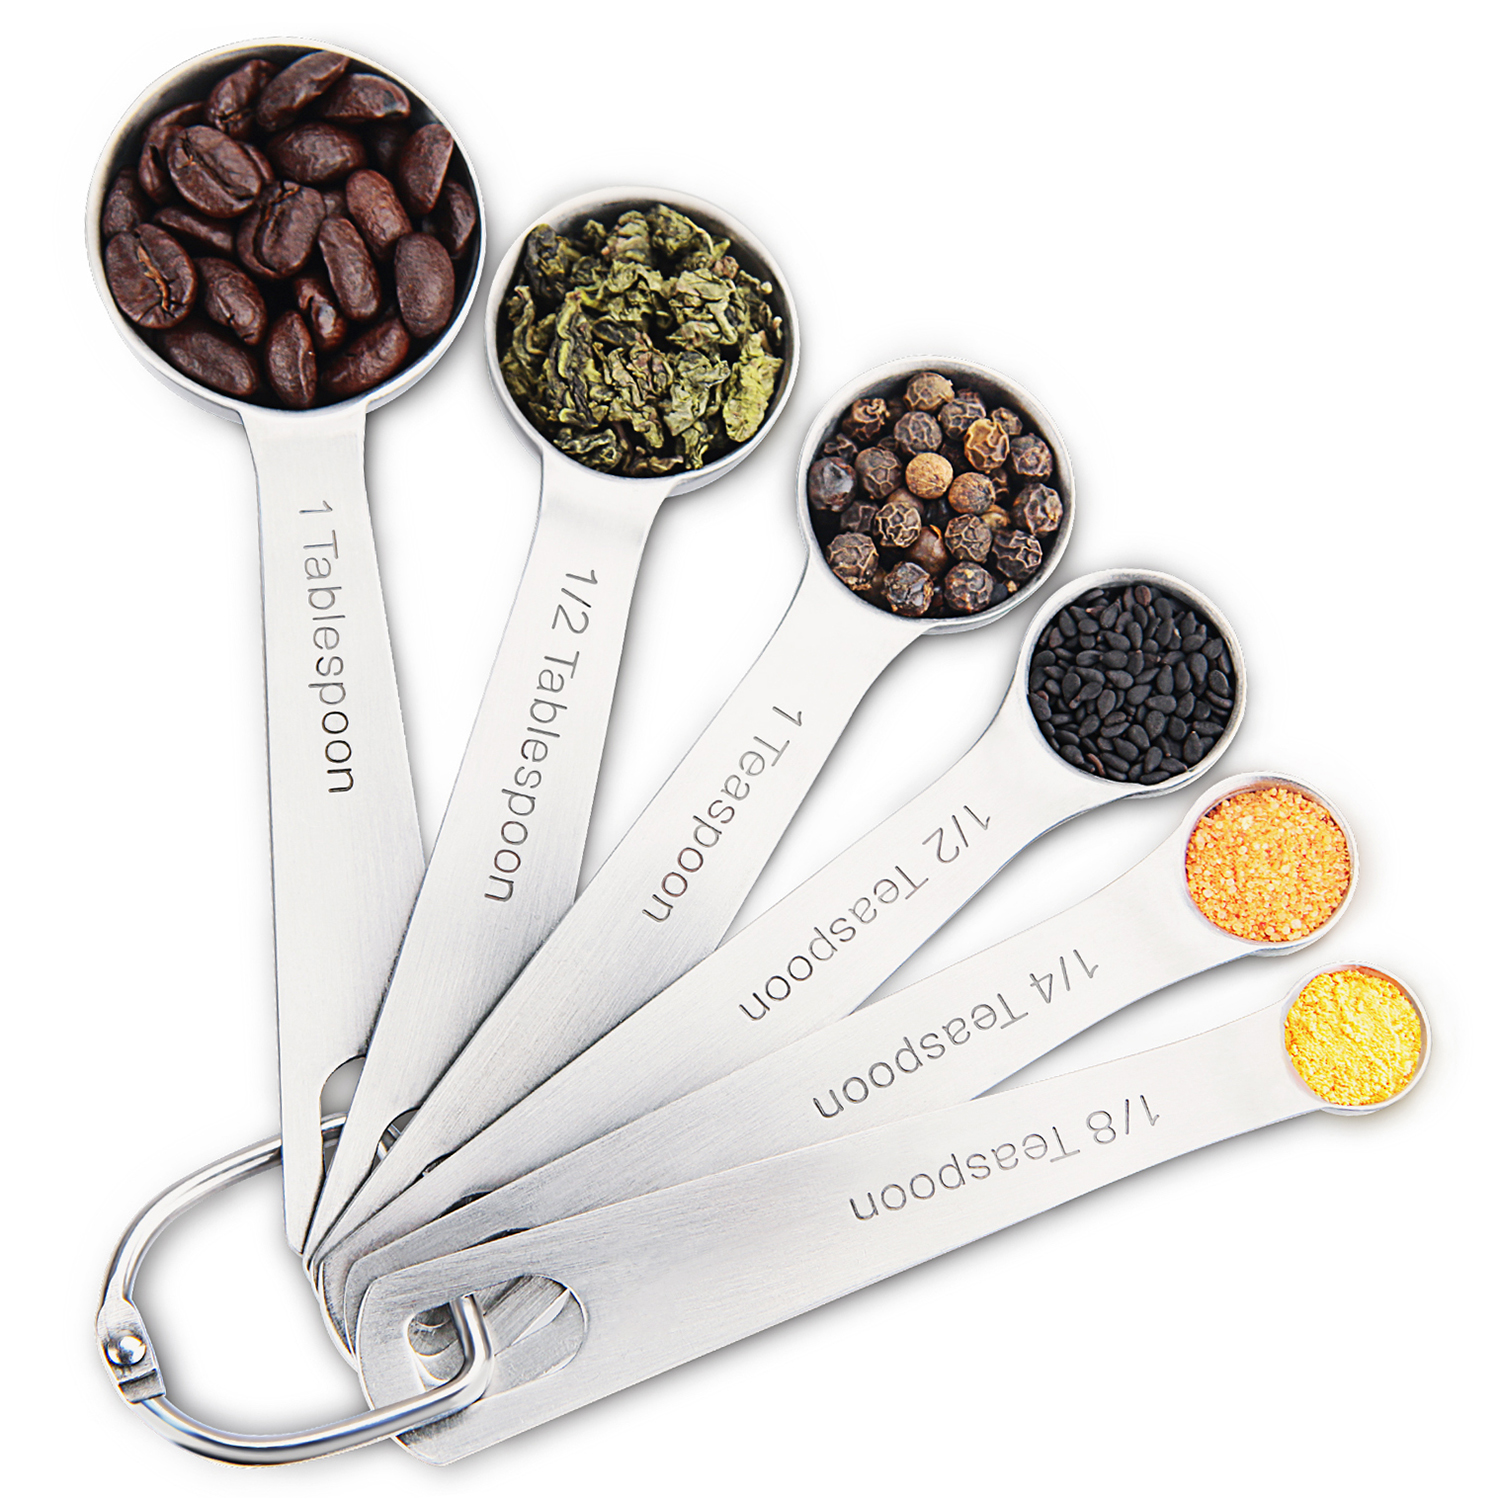 Stainless Steel Measuring Spoons set of 6 for Measuring Liquid and Dry Ingredients Accurate Quality for Baking and Cooking